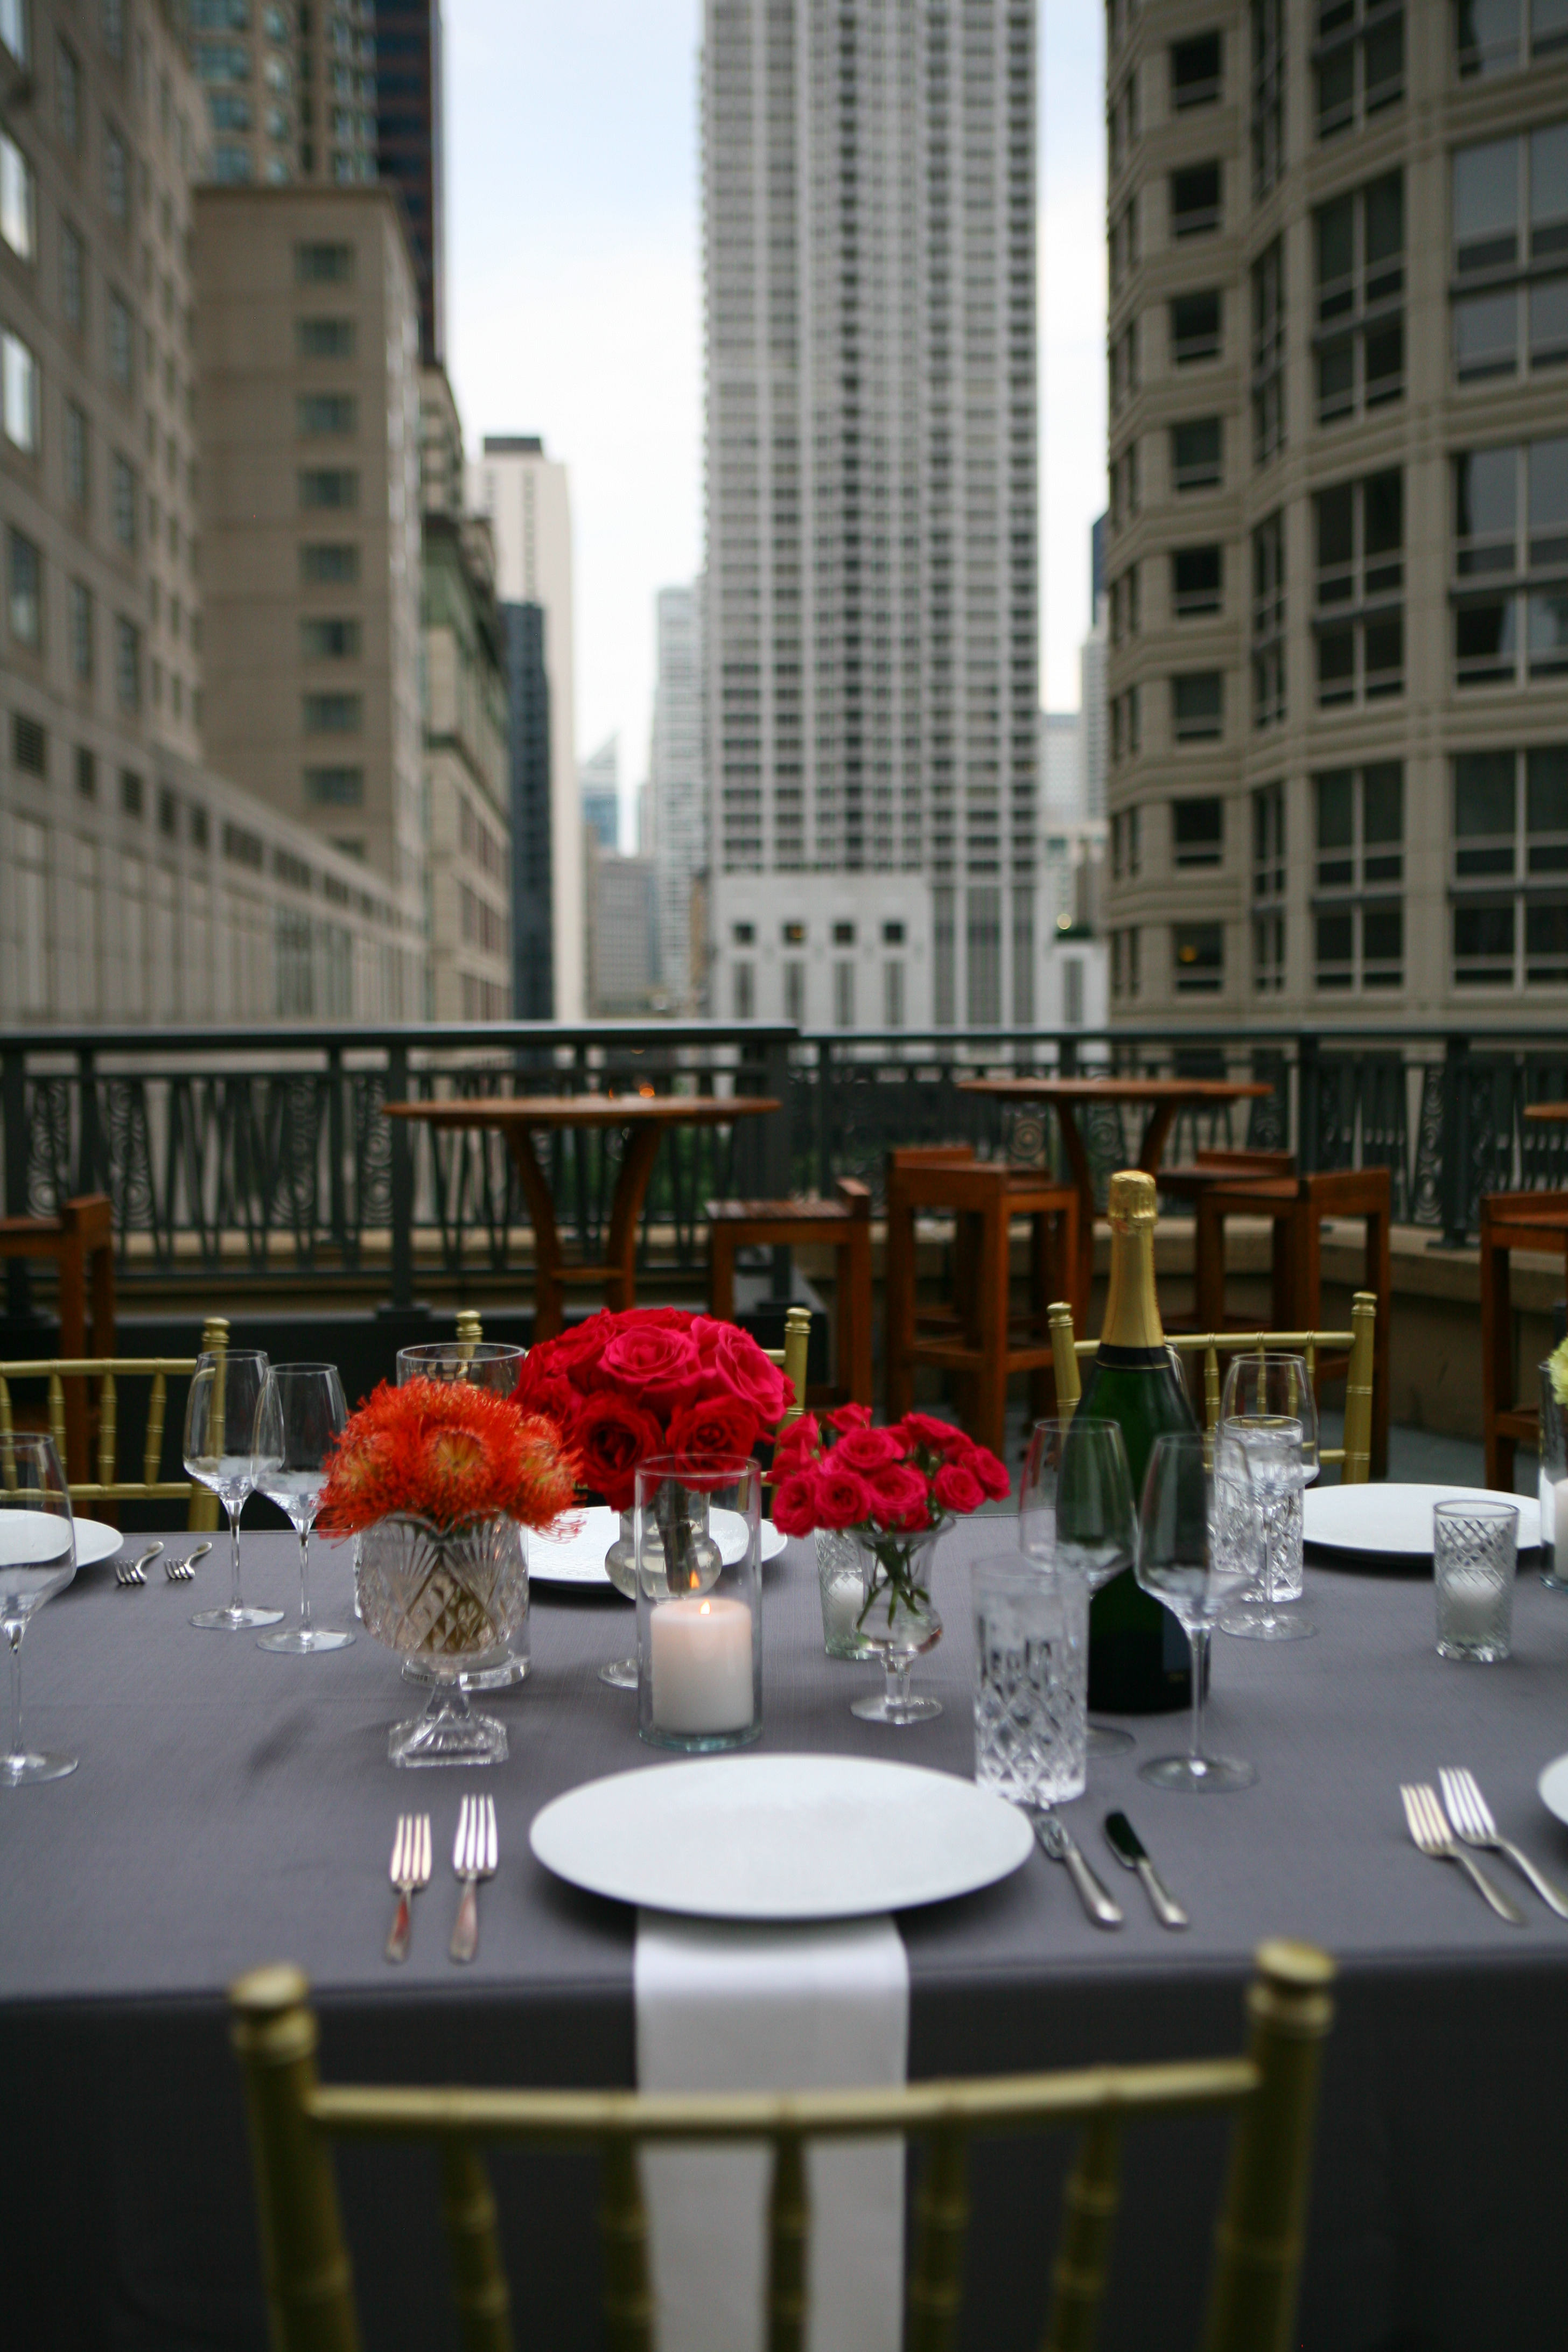 Dinner in the Garden - Park Hyatt Chicago